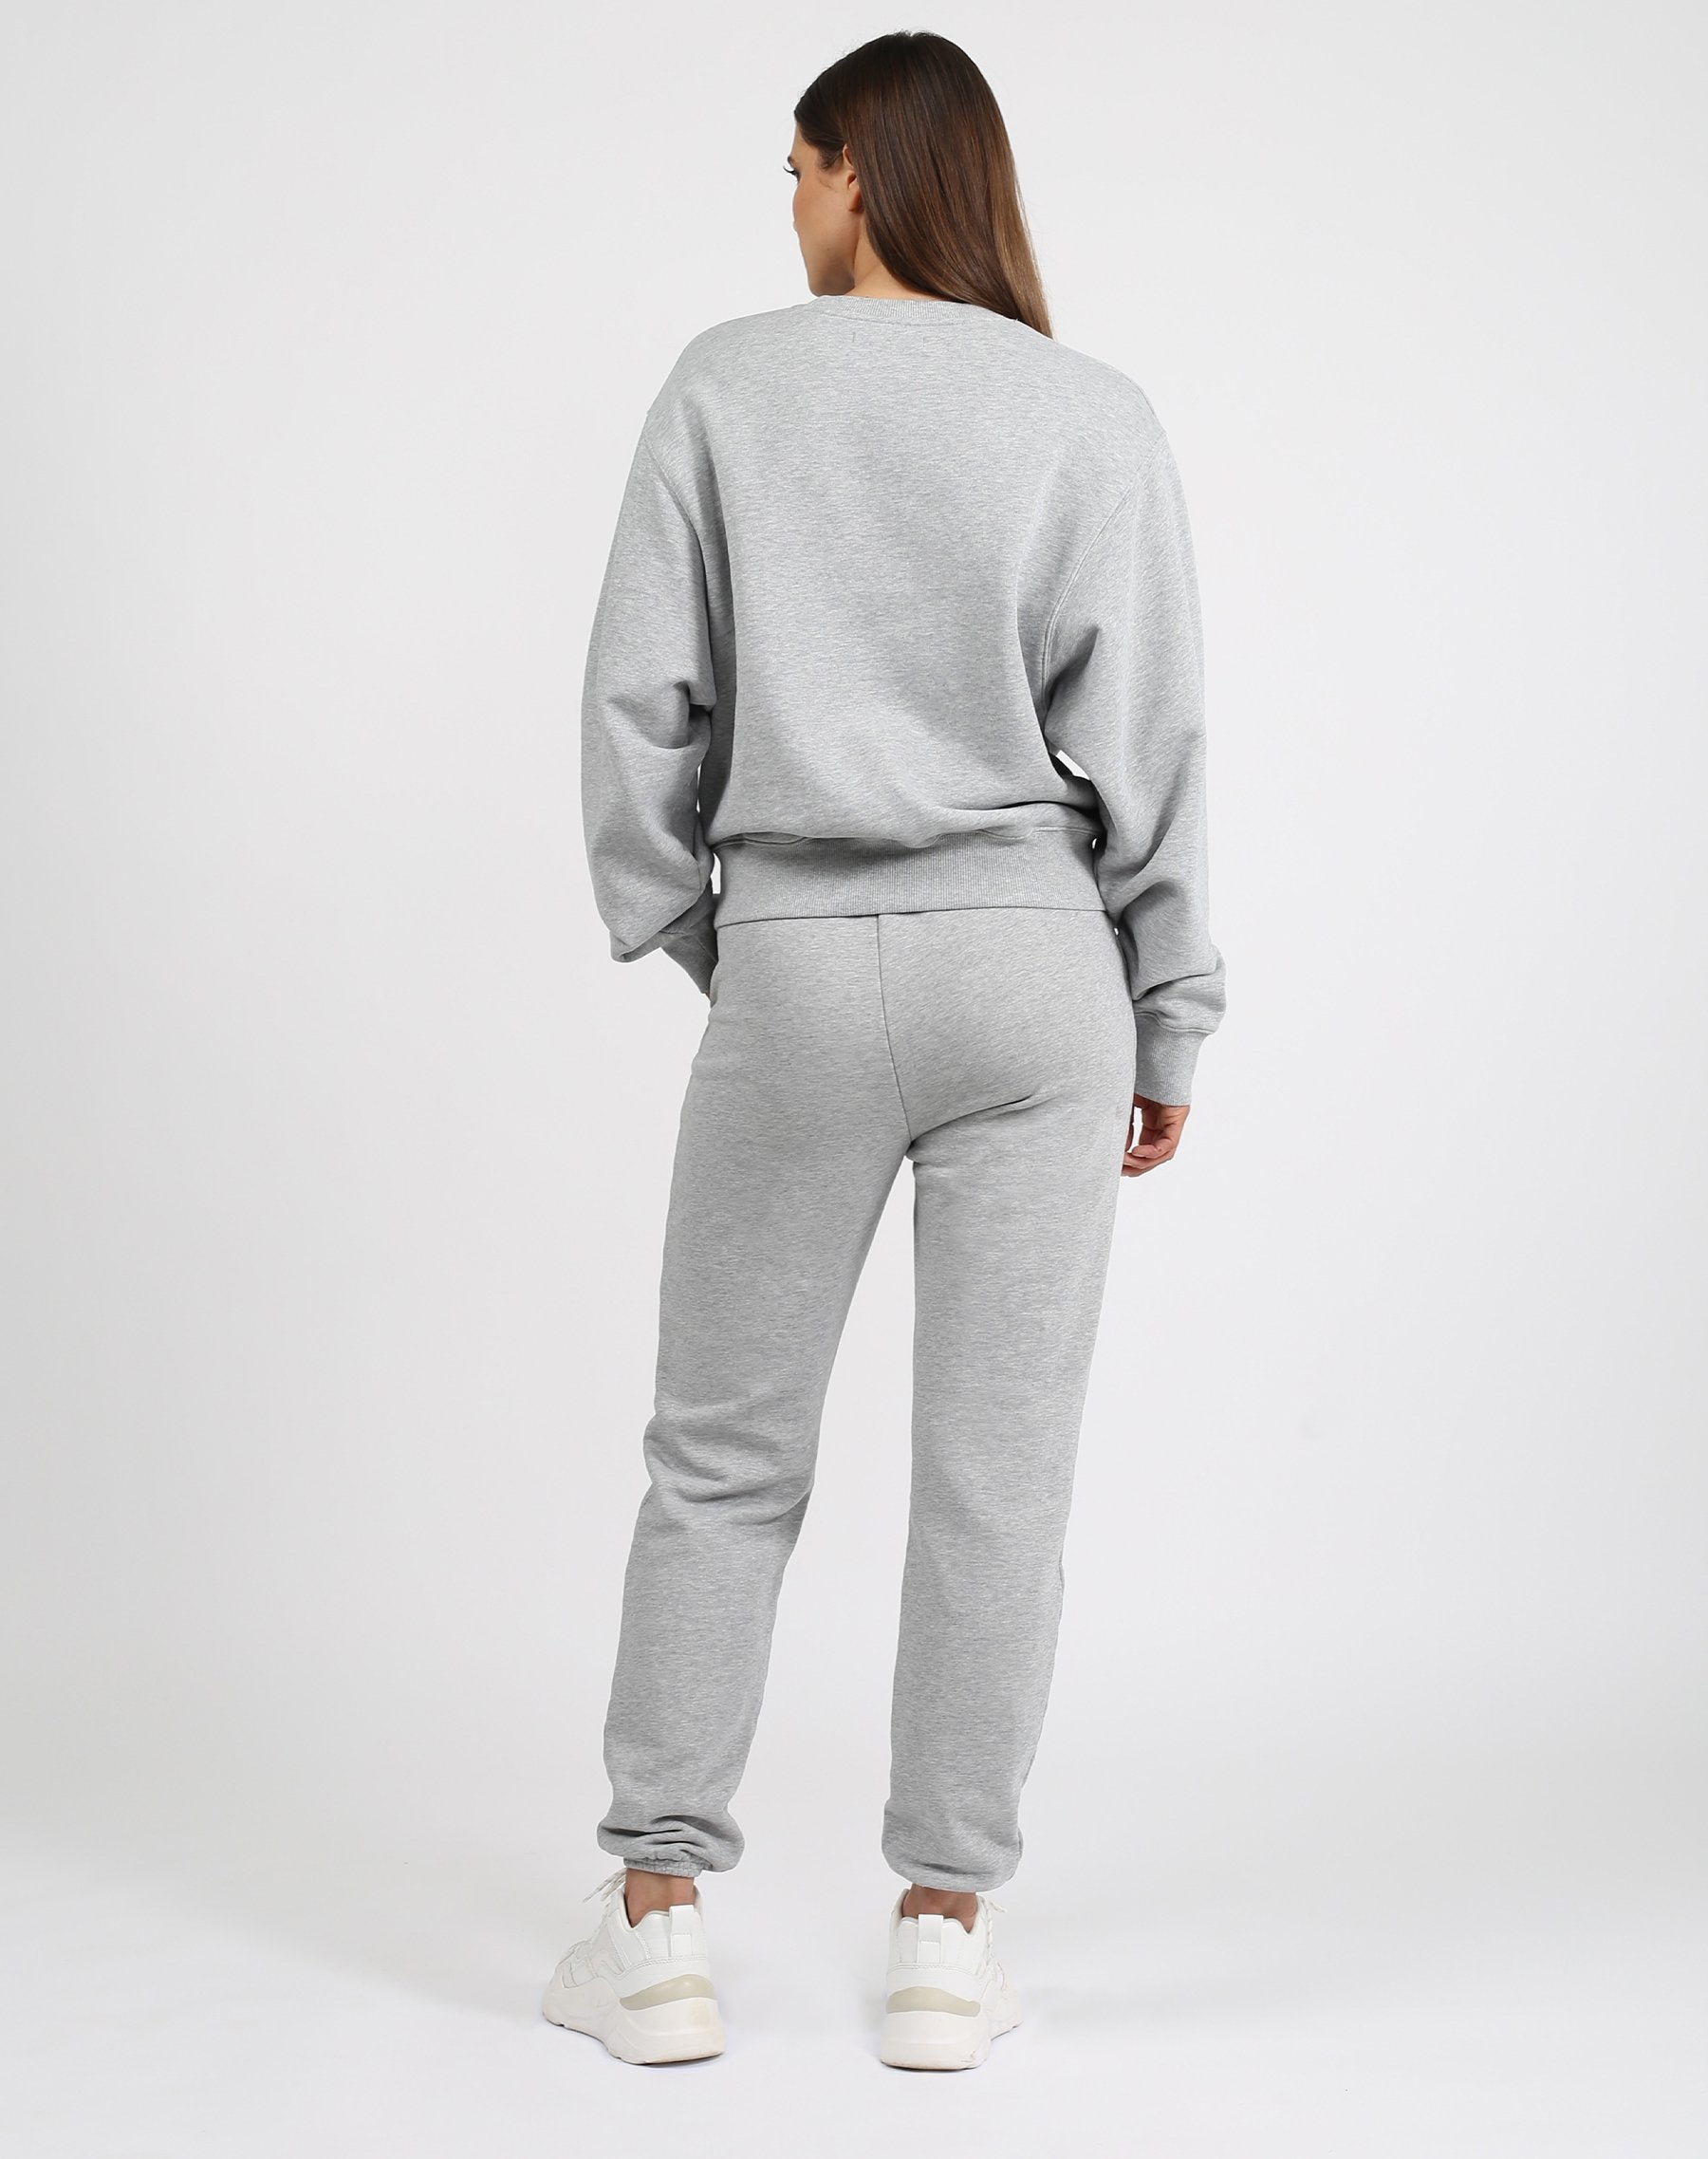 "Meet your new Best Friend. Our new style of Jogger is the Best Friend fit. She has a high rise waist and a relaxed, slim leg with a 28"" inseam.     Our Basics collection is 100% cotton and has already been preshrunk so it'll fit you perfectly. We recommend sticking true to size for this collection."